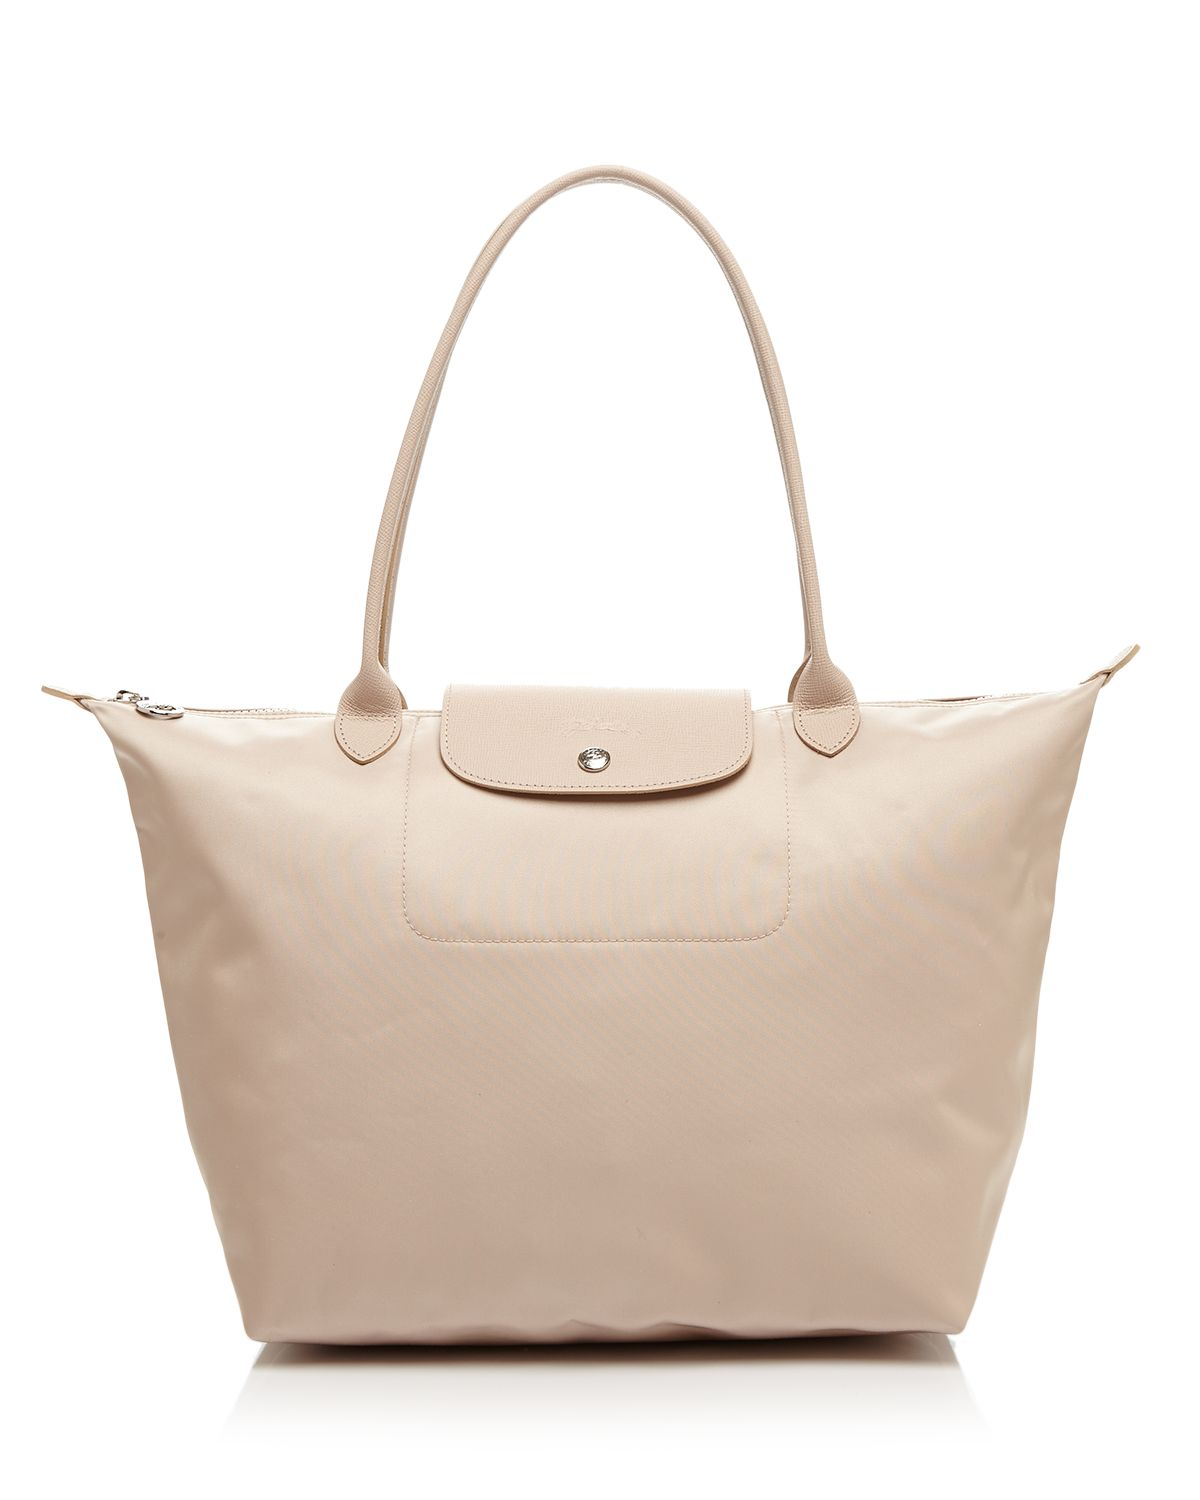 Sac Longchamp Pliage Beige : Longchamp tote le pliage neo large in natural lyst